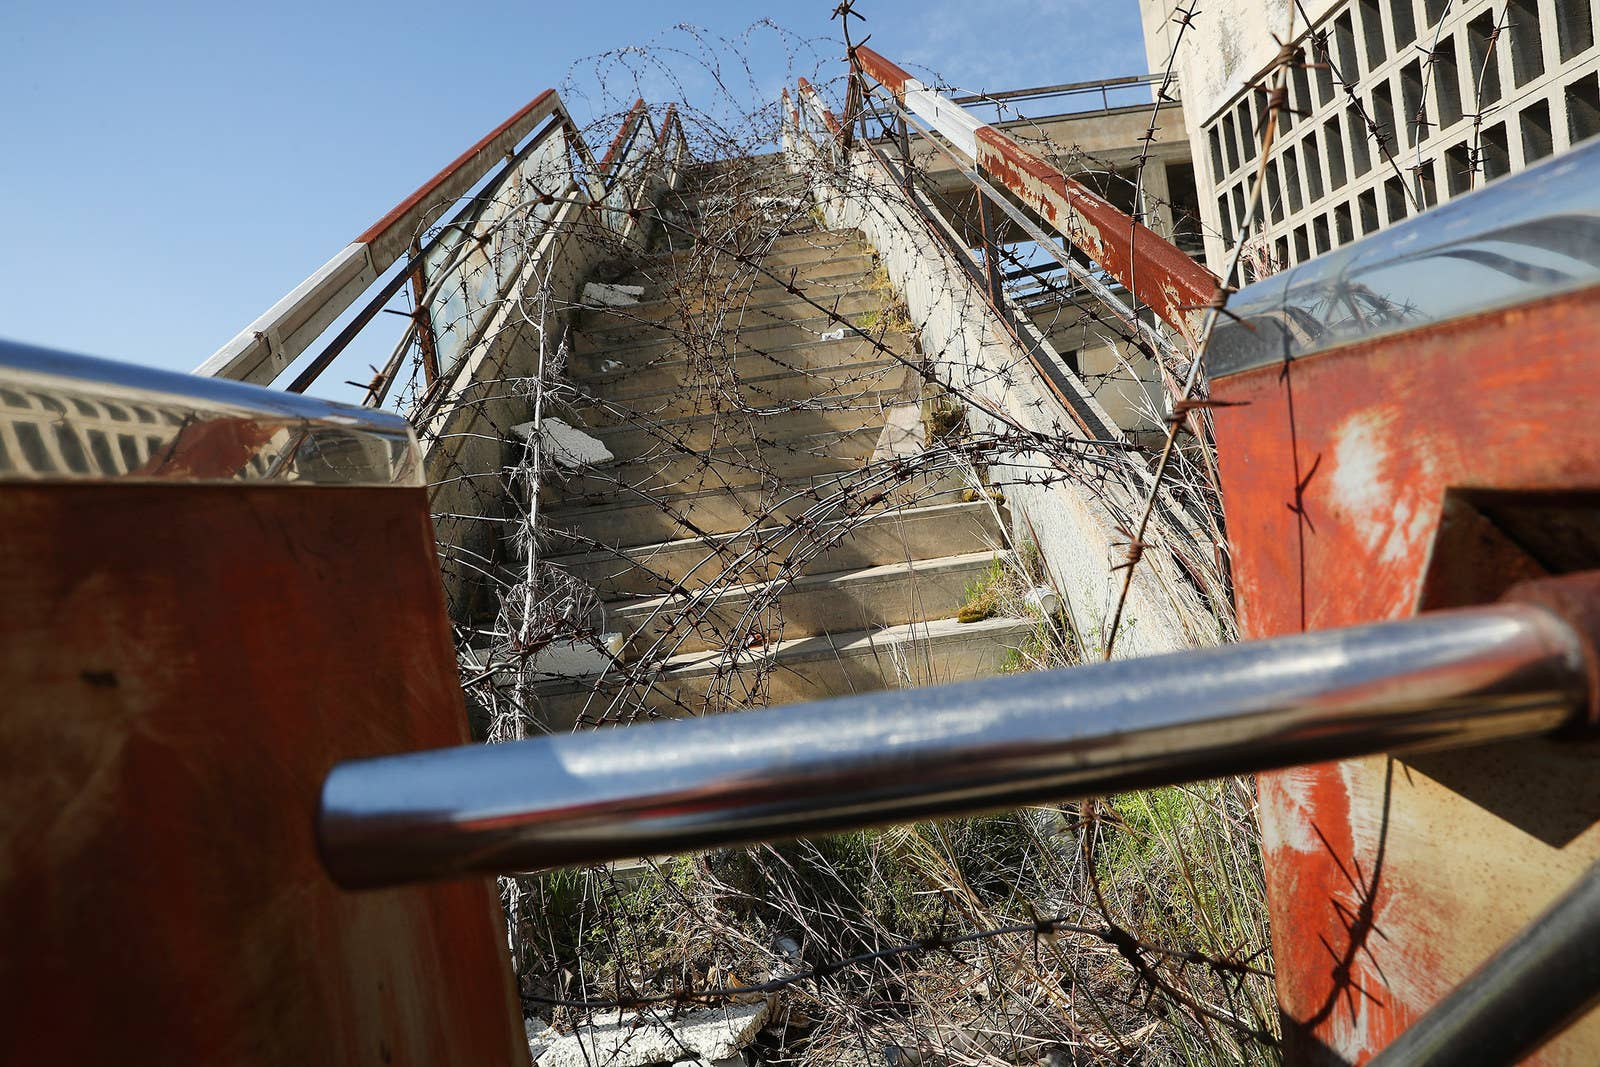 A stairway covered in barbed wire leads to the former visitors restaurant and terrace.